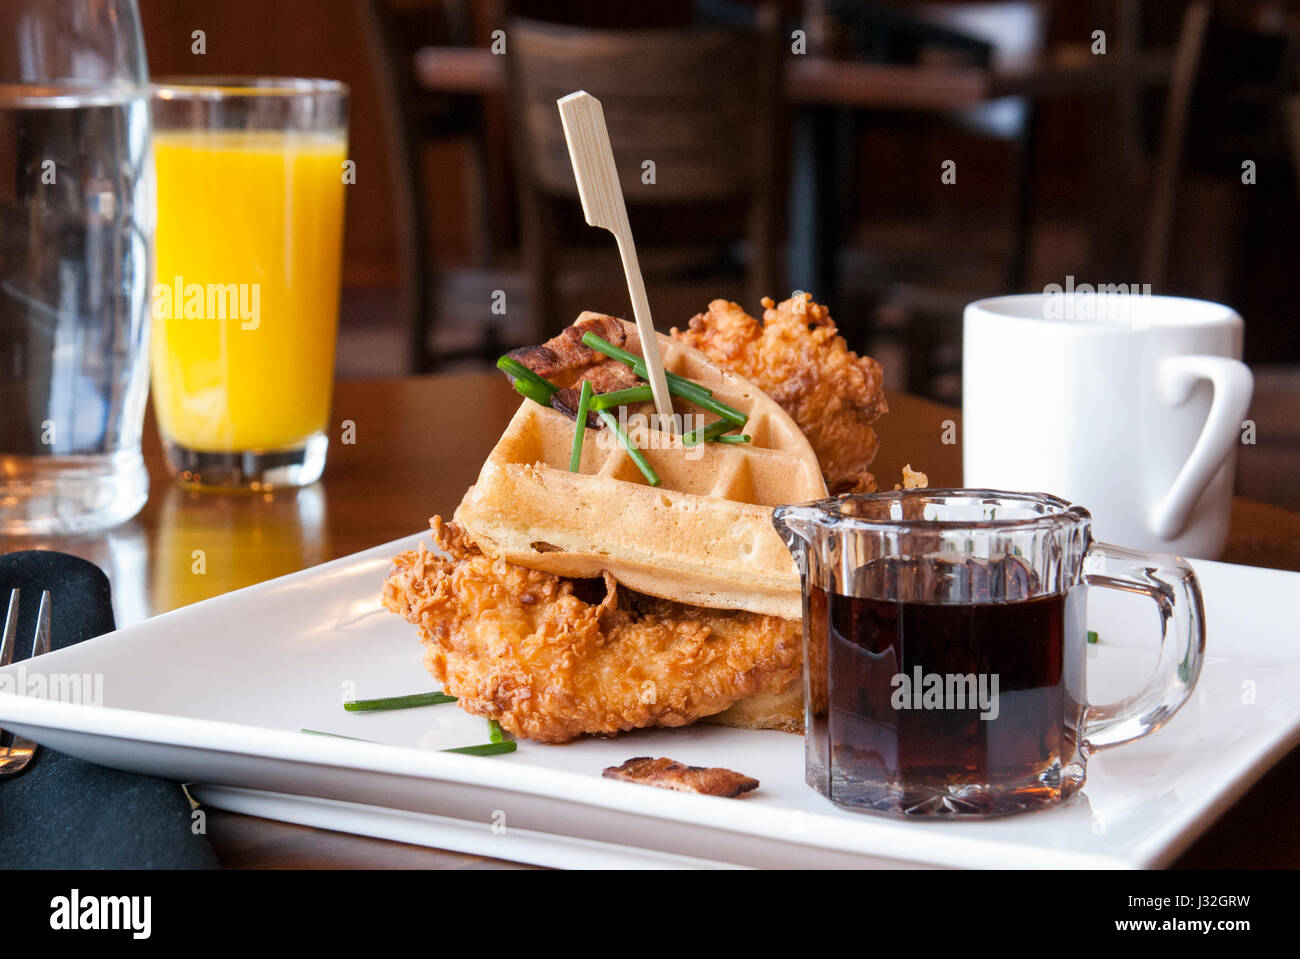 A Southern brunch of fried chicken and waffles at a restaurant - Stock Image